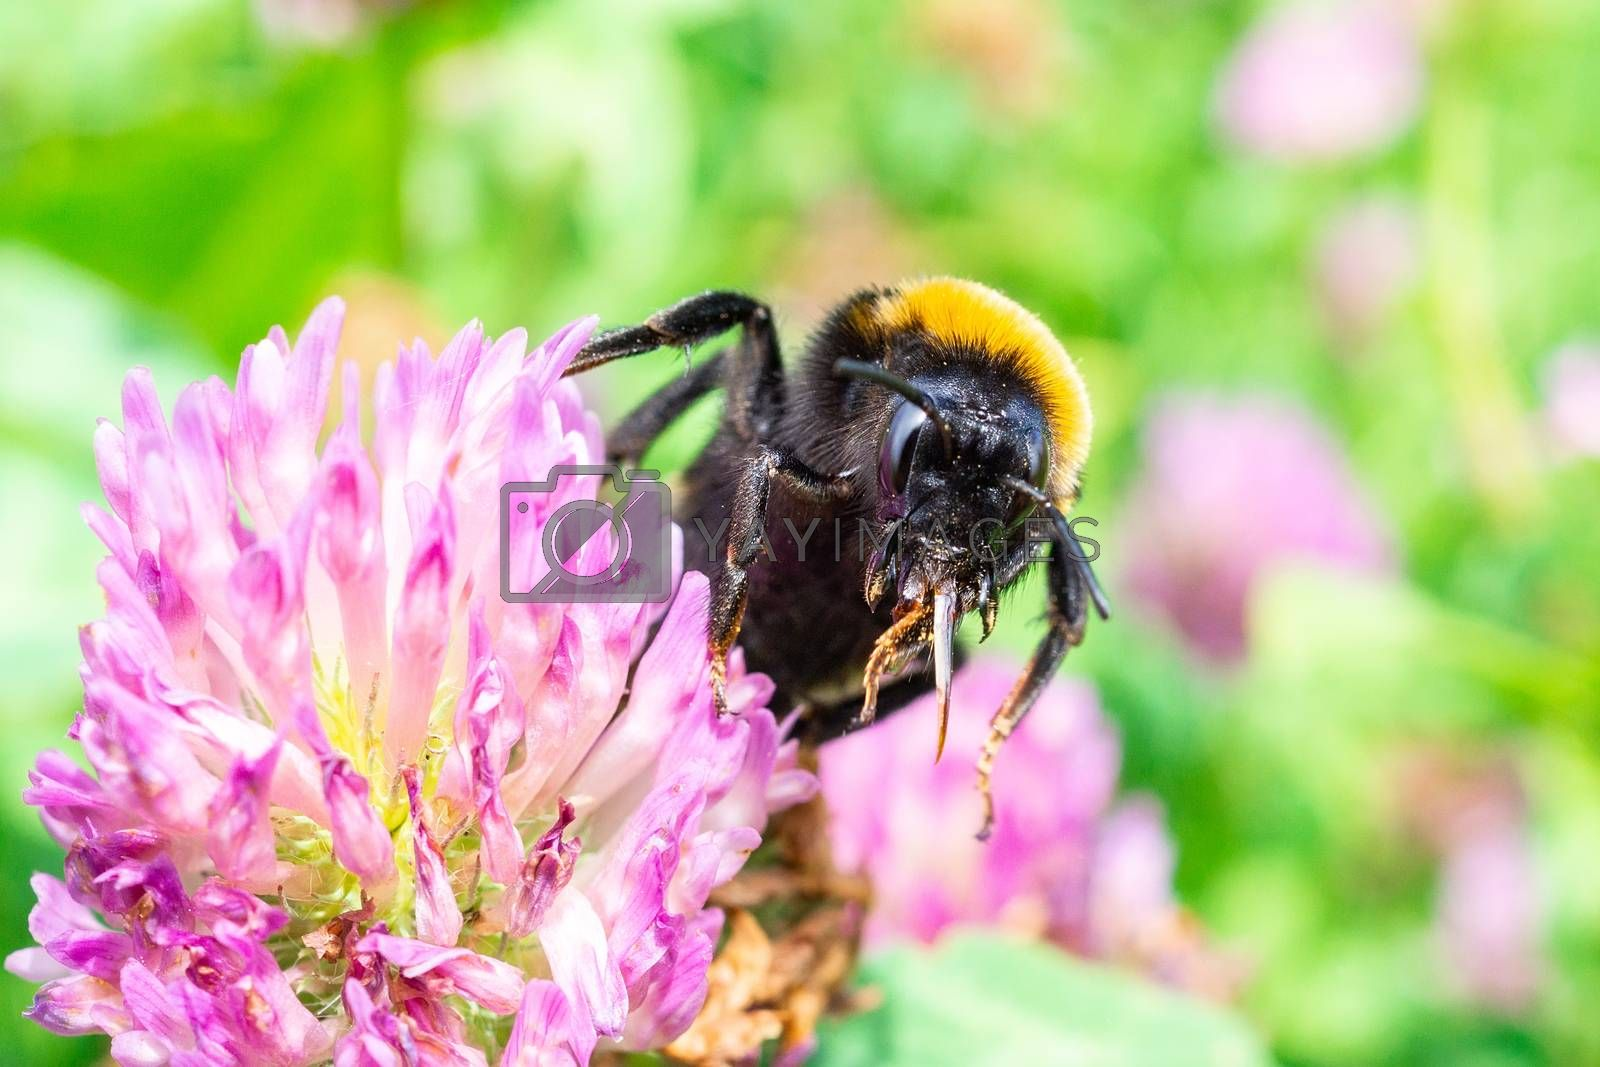 A bumblebee gathers pollen on a red flower, a bumblebee on a clover